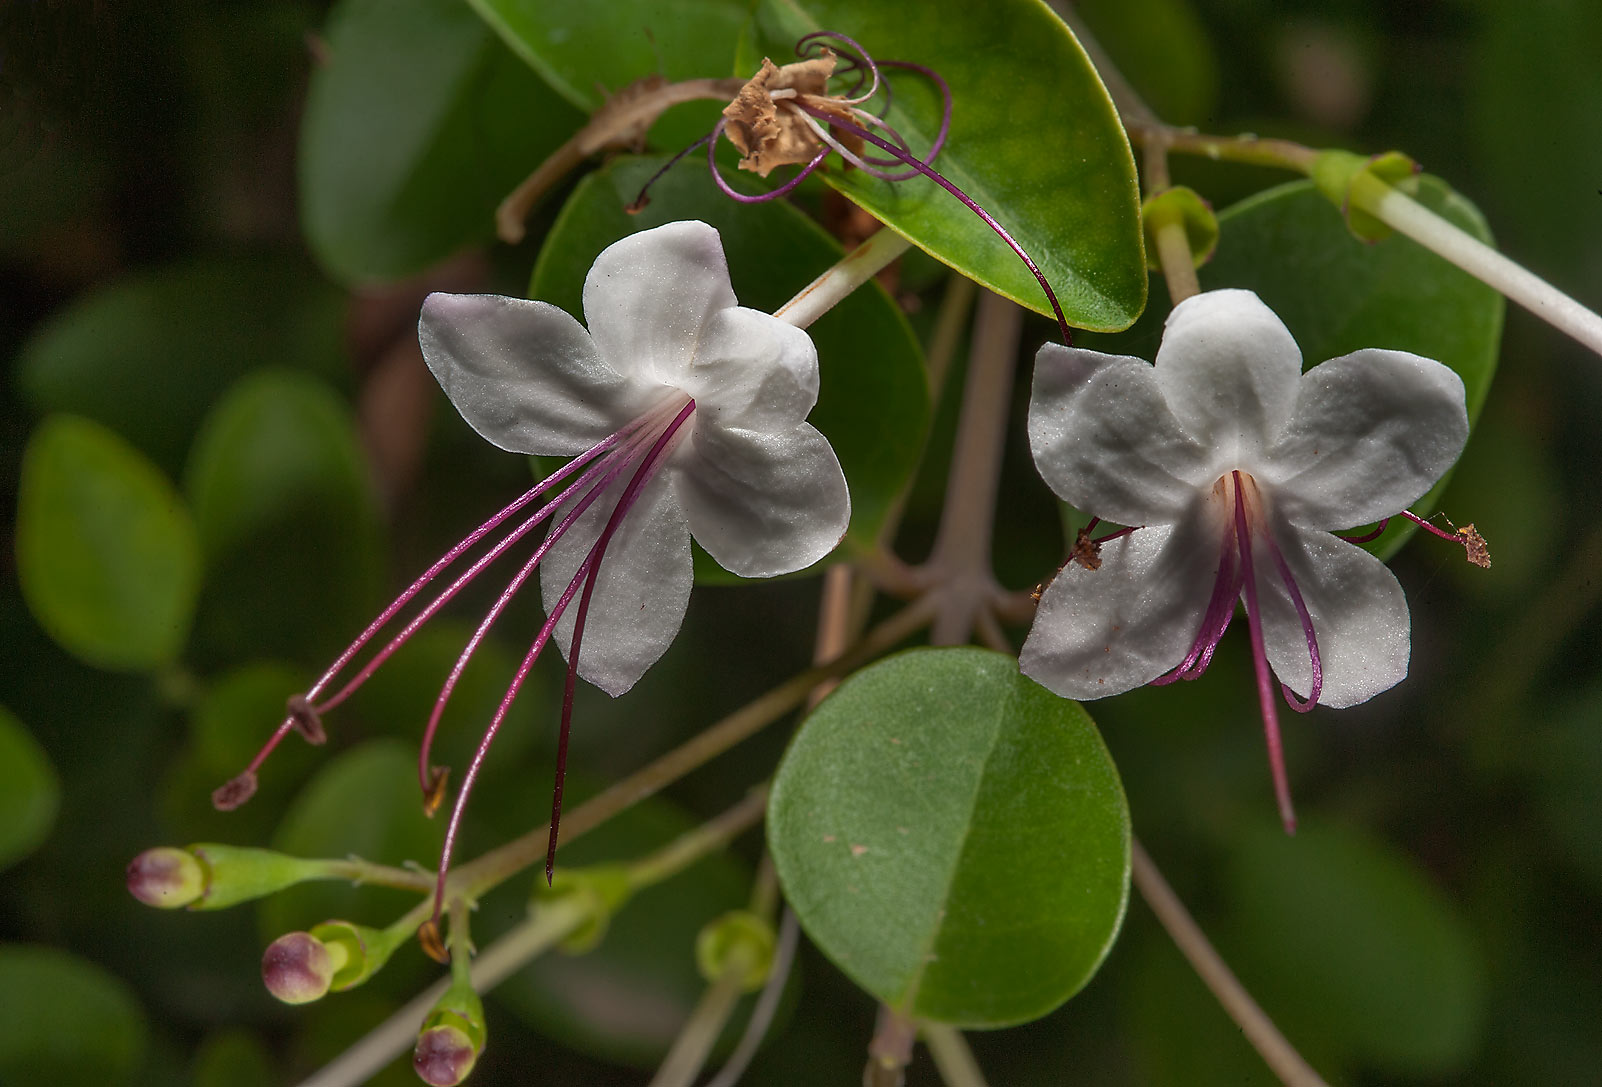 Glory bower (Volkameria inermis, Clerodendrum...City Park. Ruwais, Northern Qatar